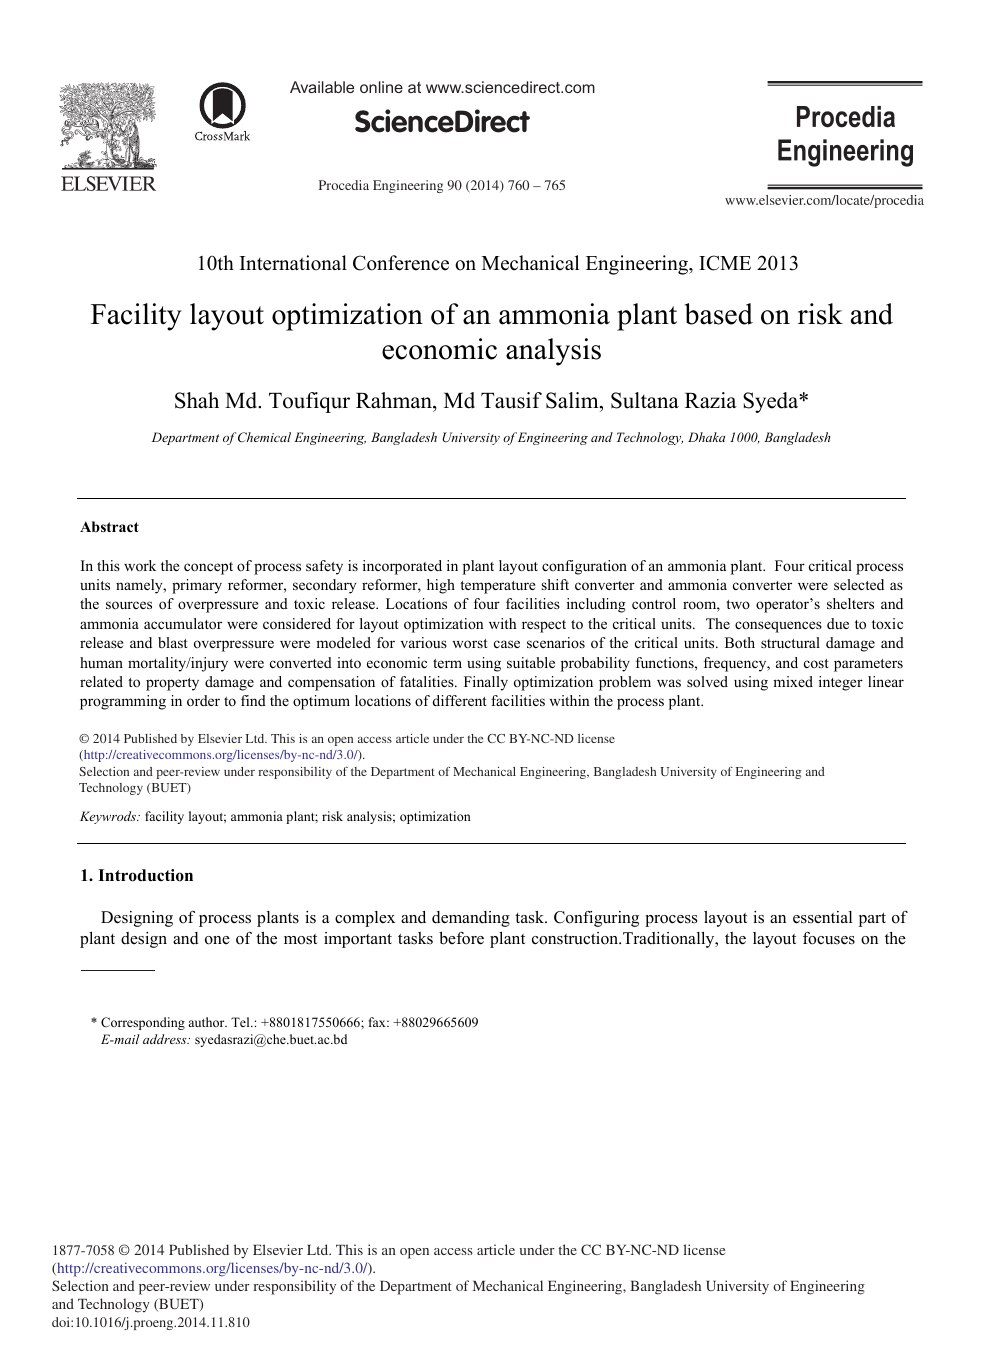 Facility Layout Optimization Of An Ammonia Plant Based On Risk And Economic Analysis Topic Of Research Paper In Chemical Engineering Download Scholarly Article Pdf And Read For Free On Cyberleninka Open